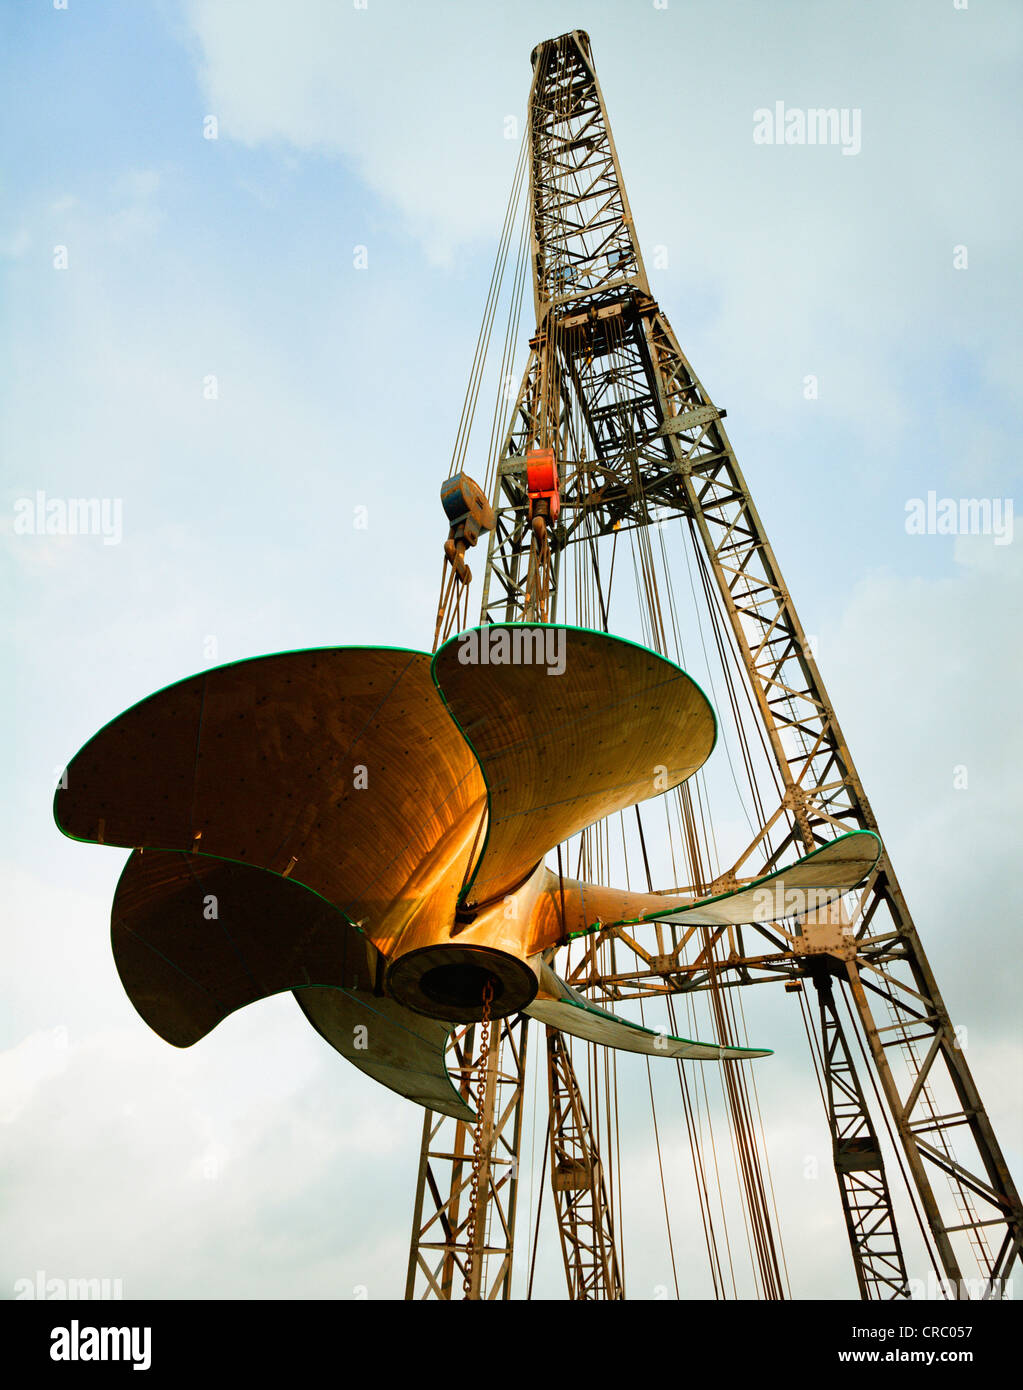 Giant propeller being lifted onto ship - Stock Image